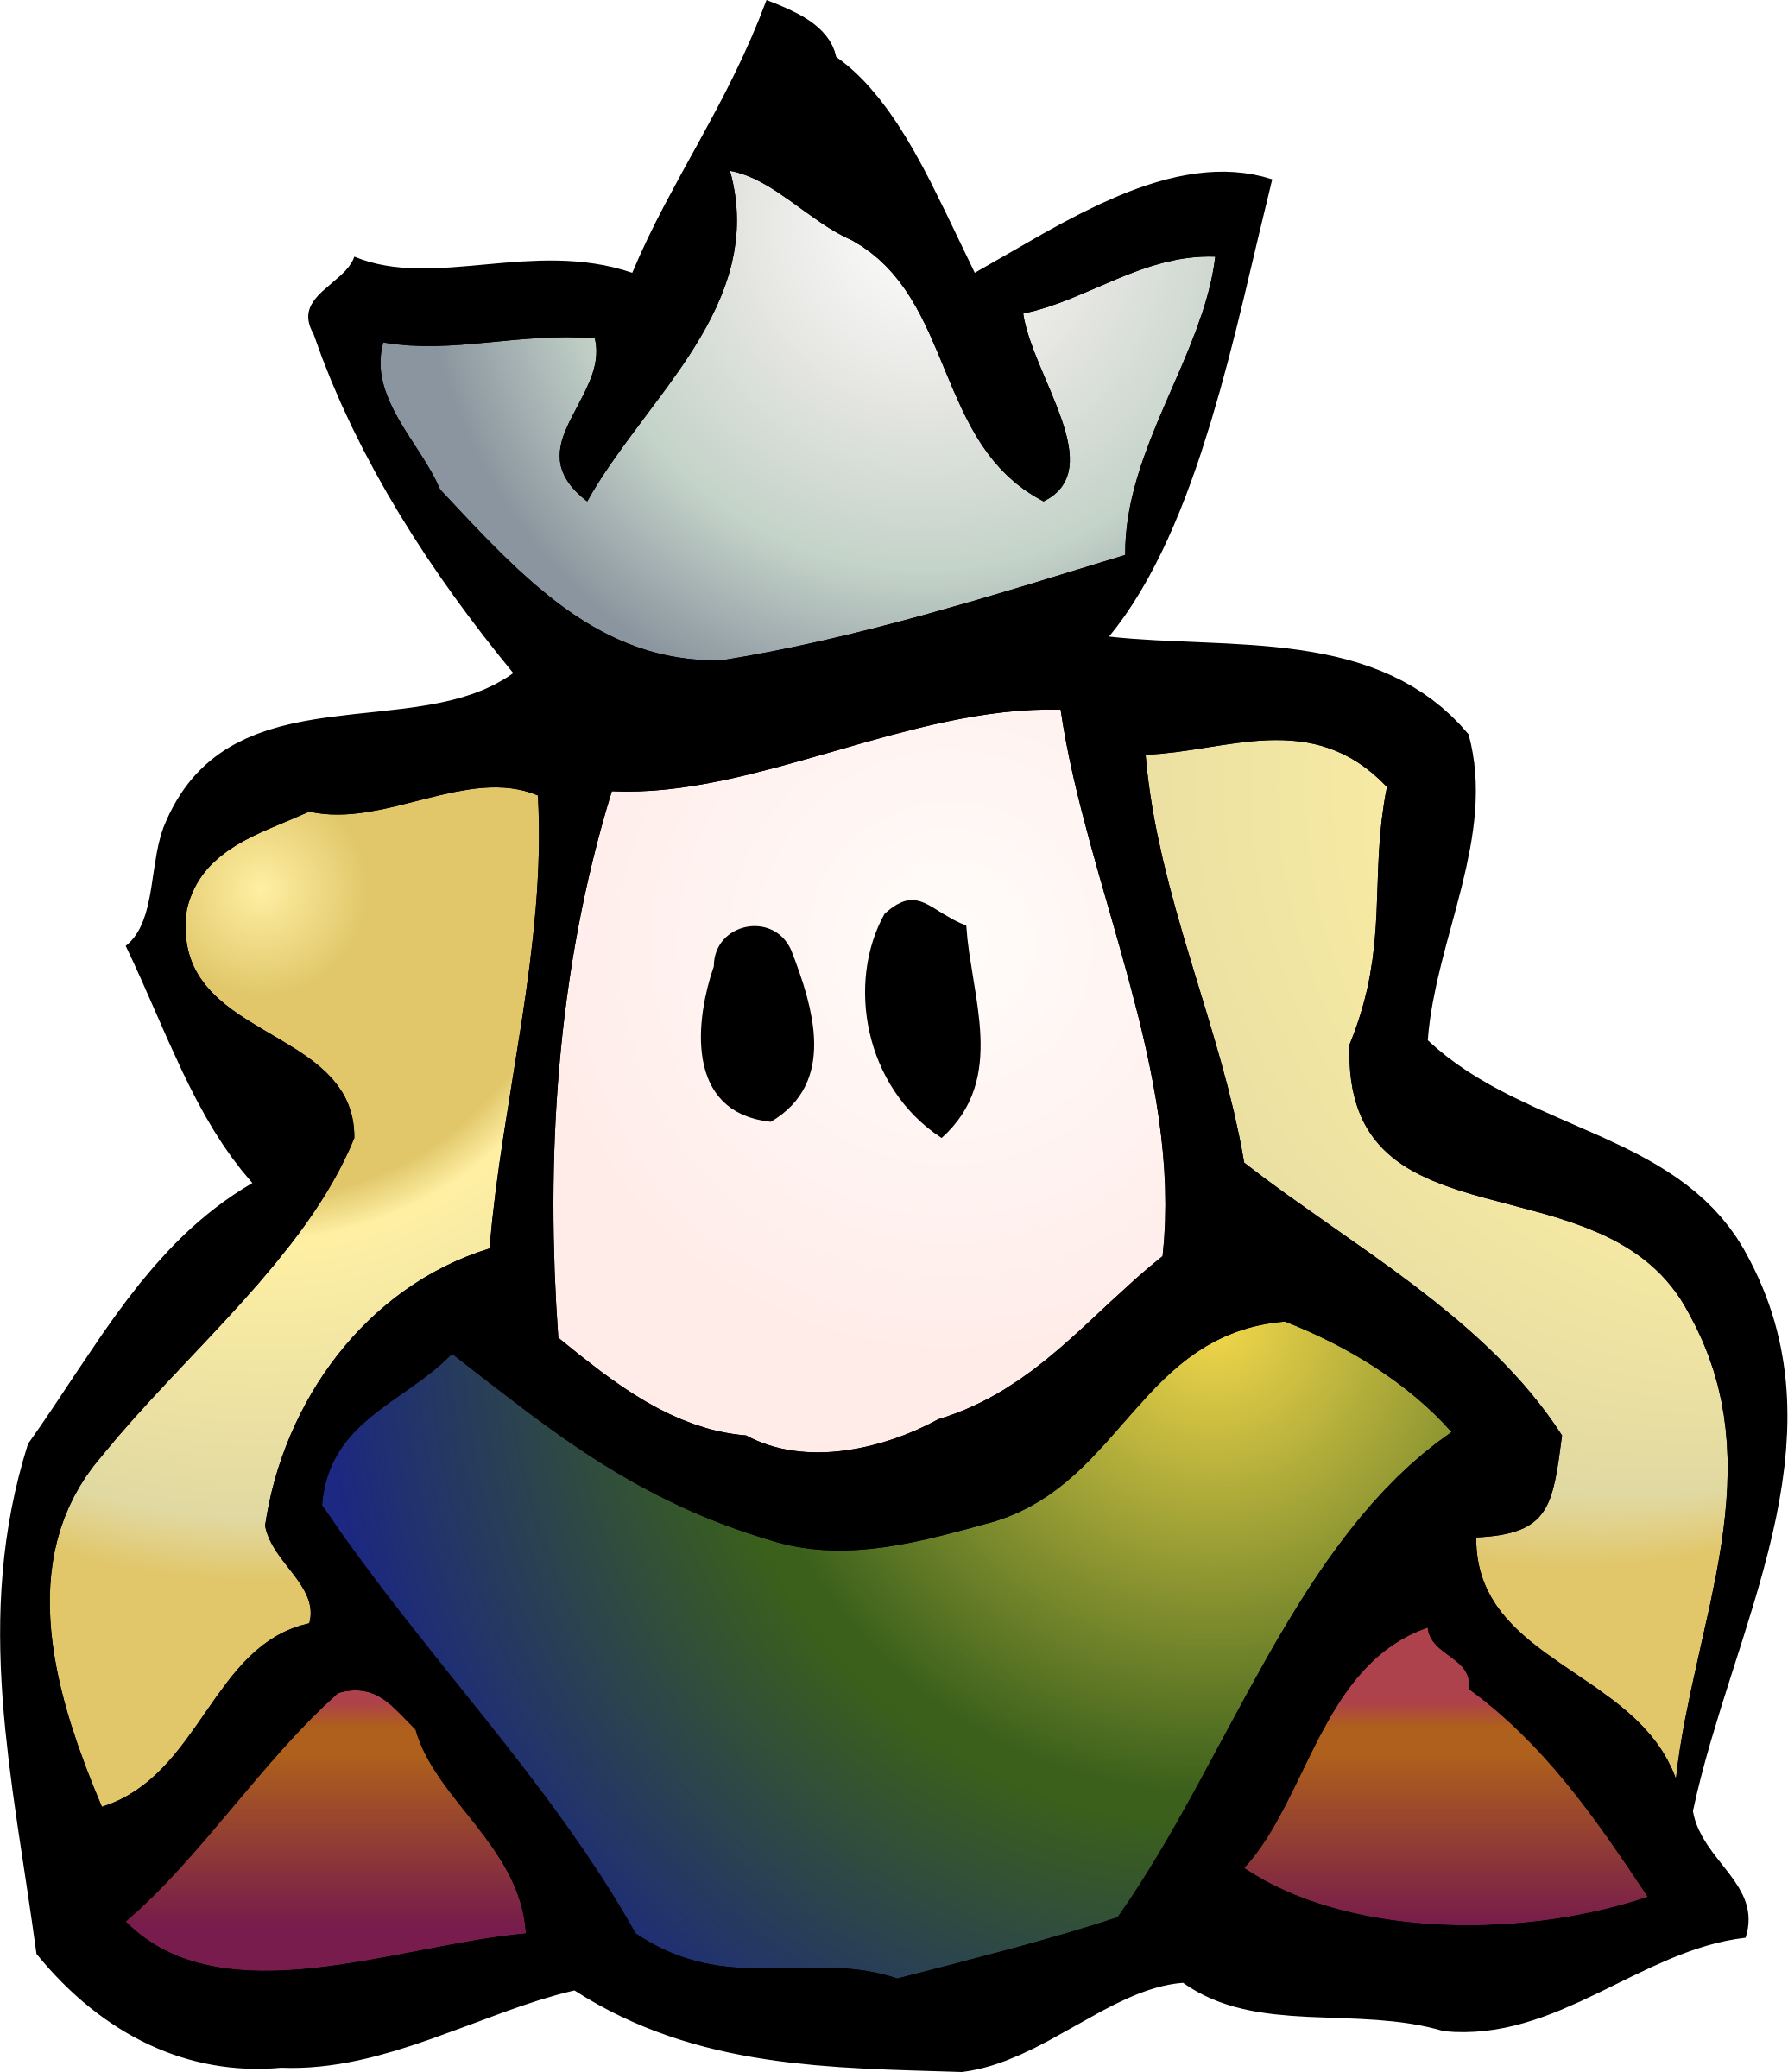 princess icon by Klàro